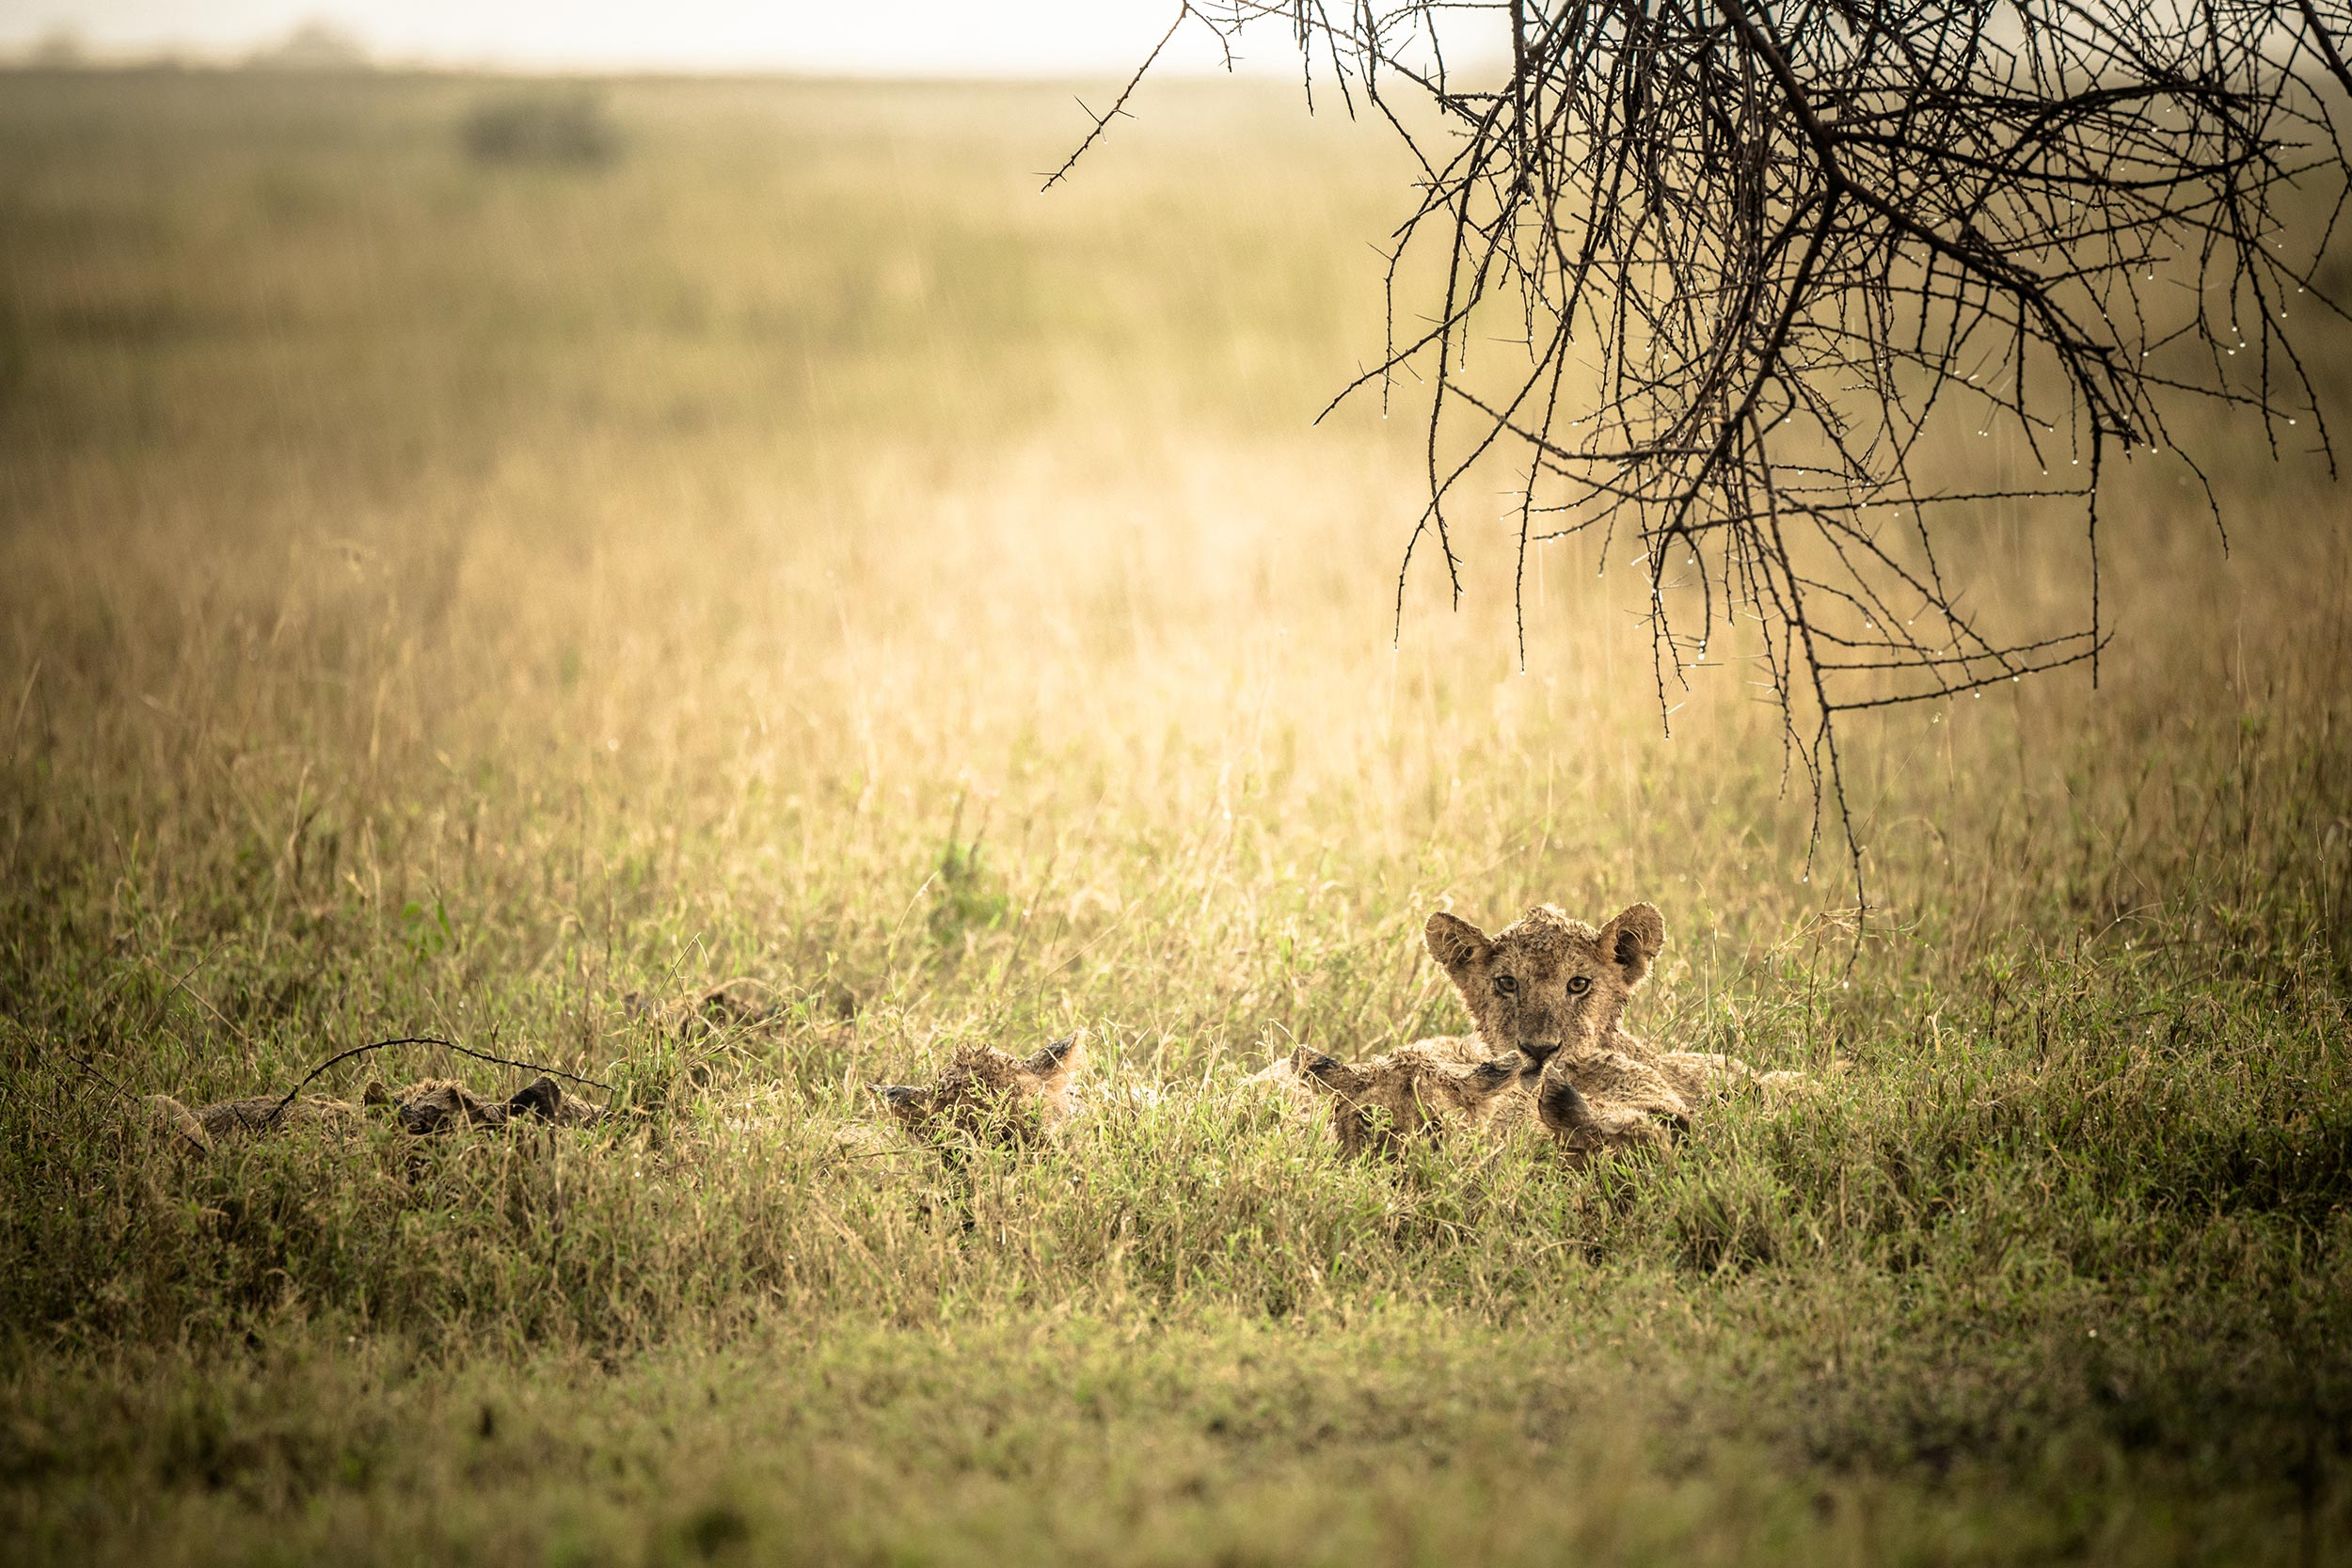 Untold-journal_Tanzania_lioness.jpg